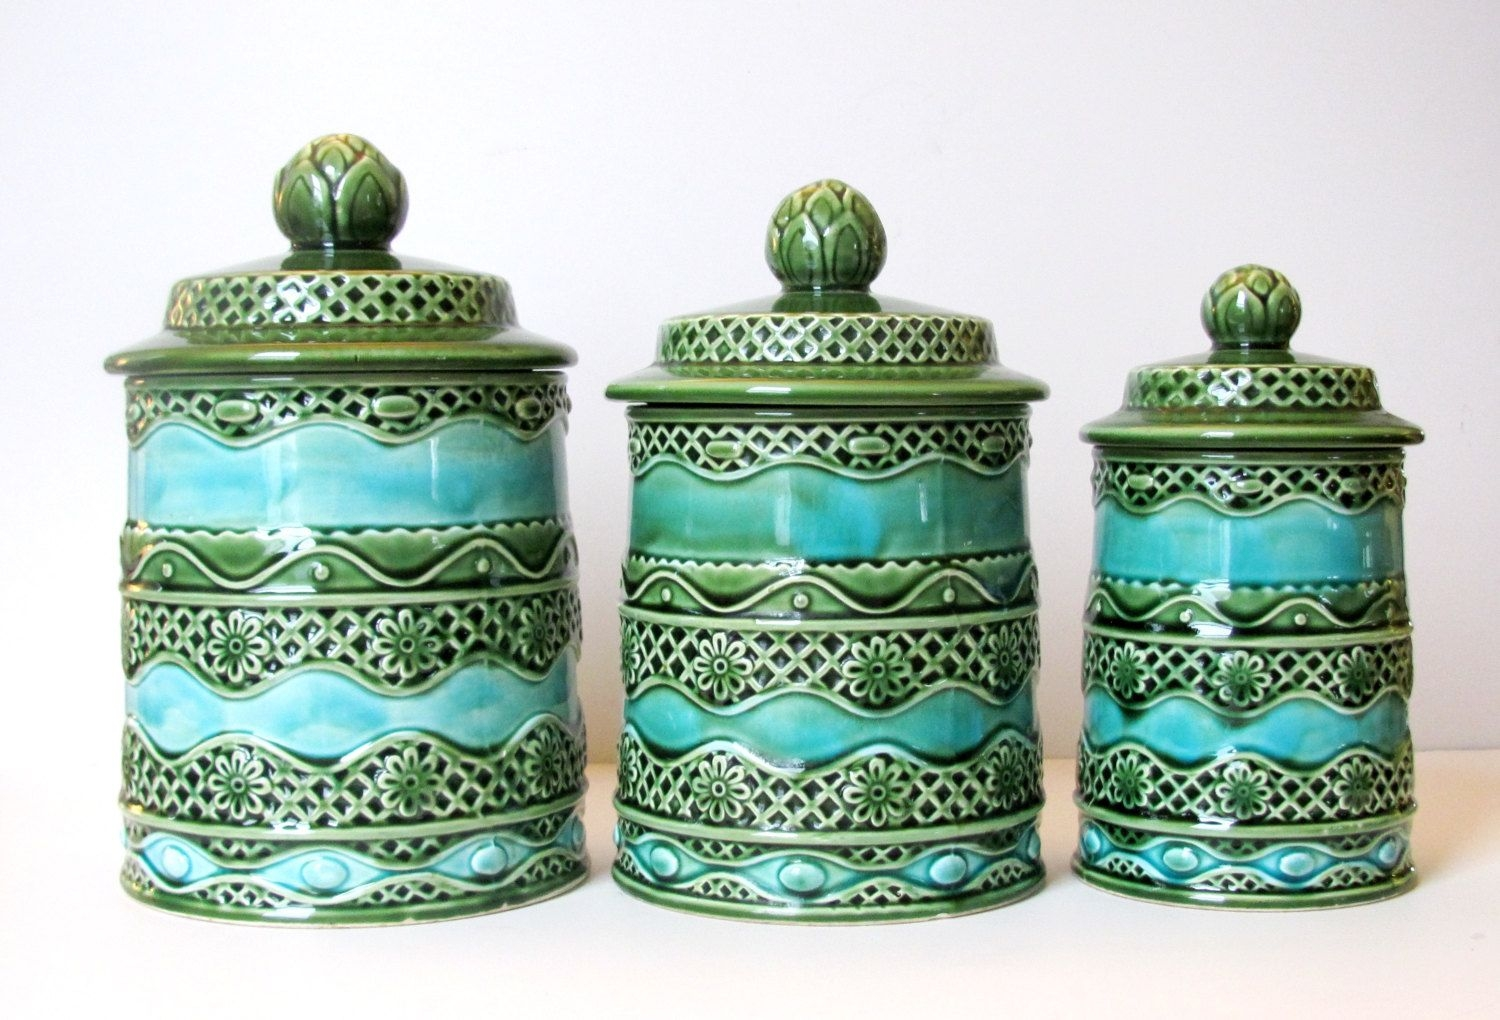 Decorative Kitchen Canisters Retro Kitchen Canisters Green Blue